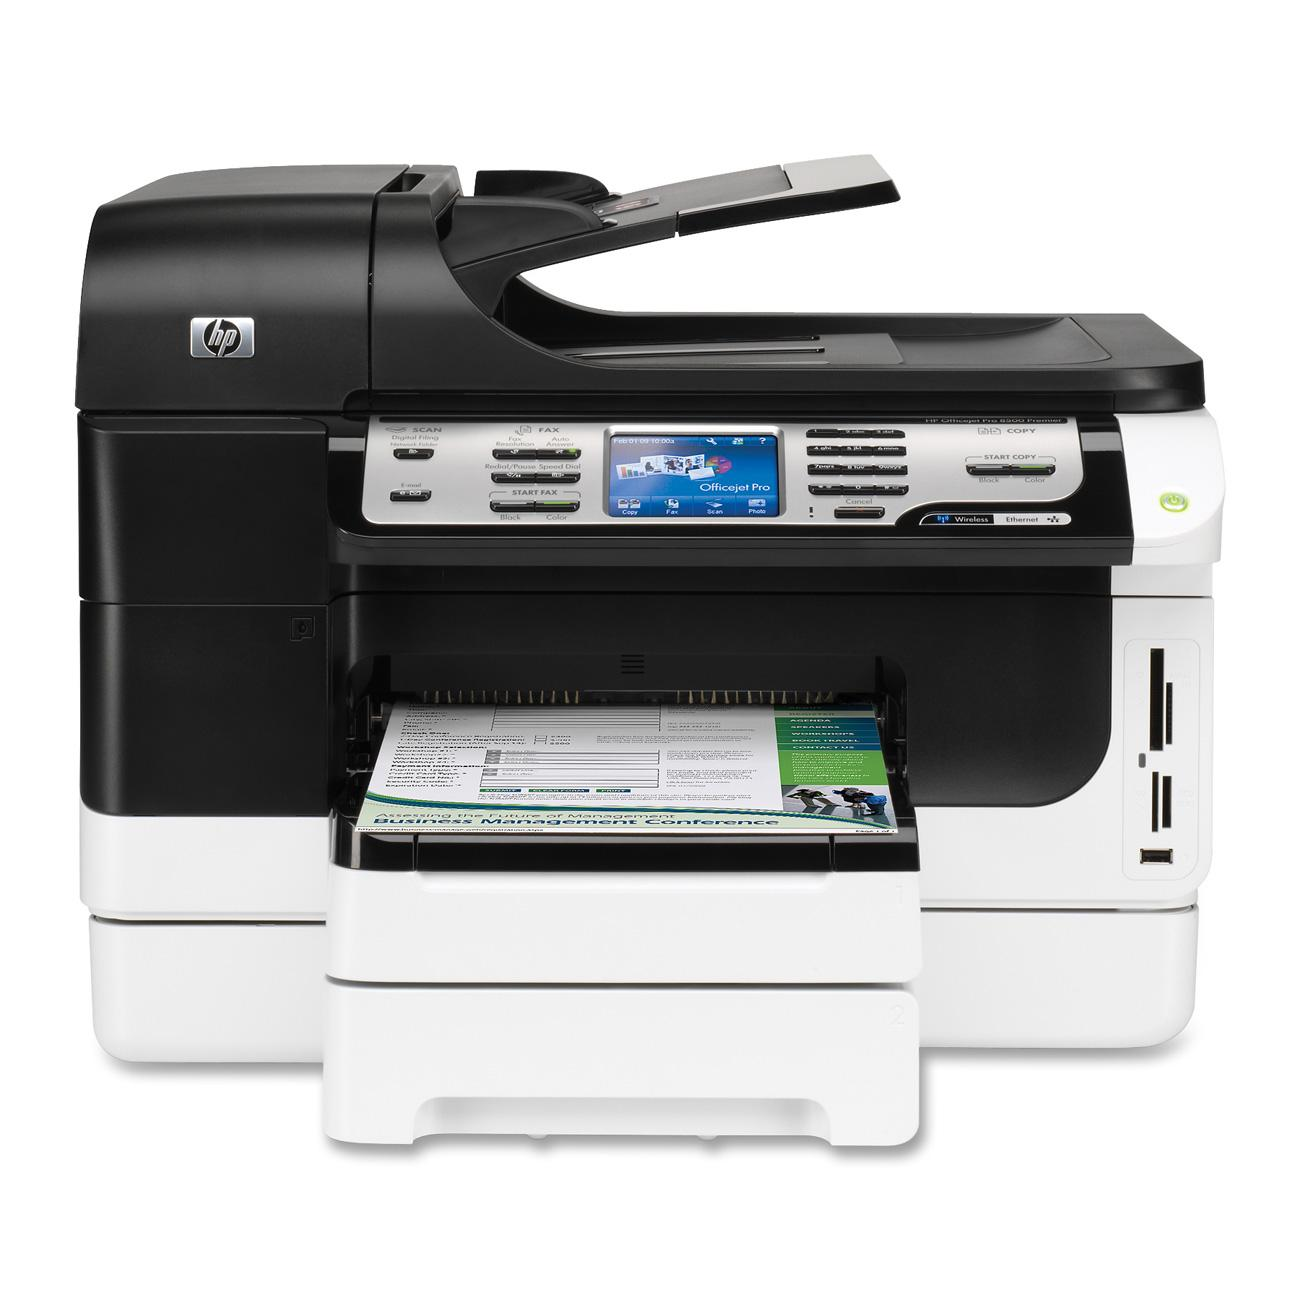 HP Officejet Pro 8500 A909n Ink Cartridges